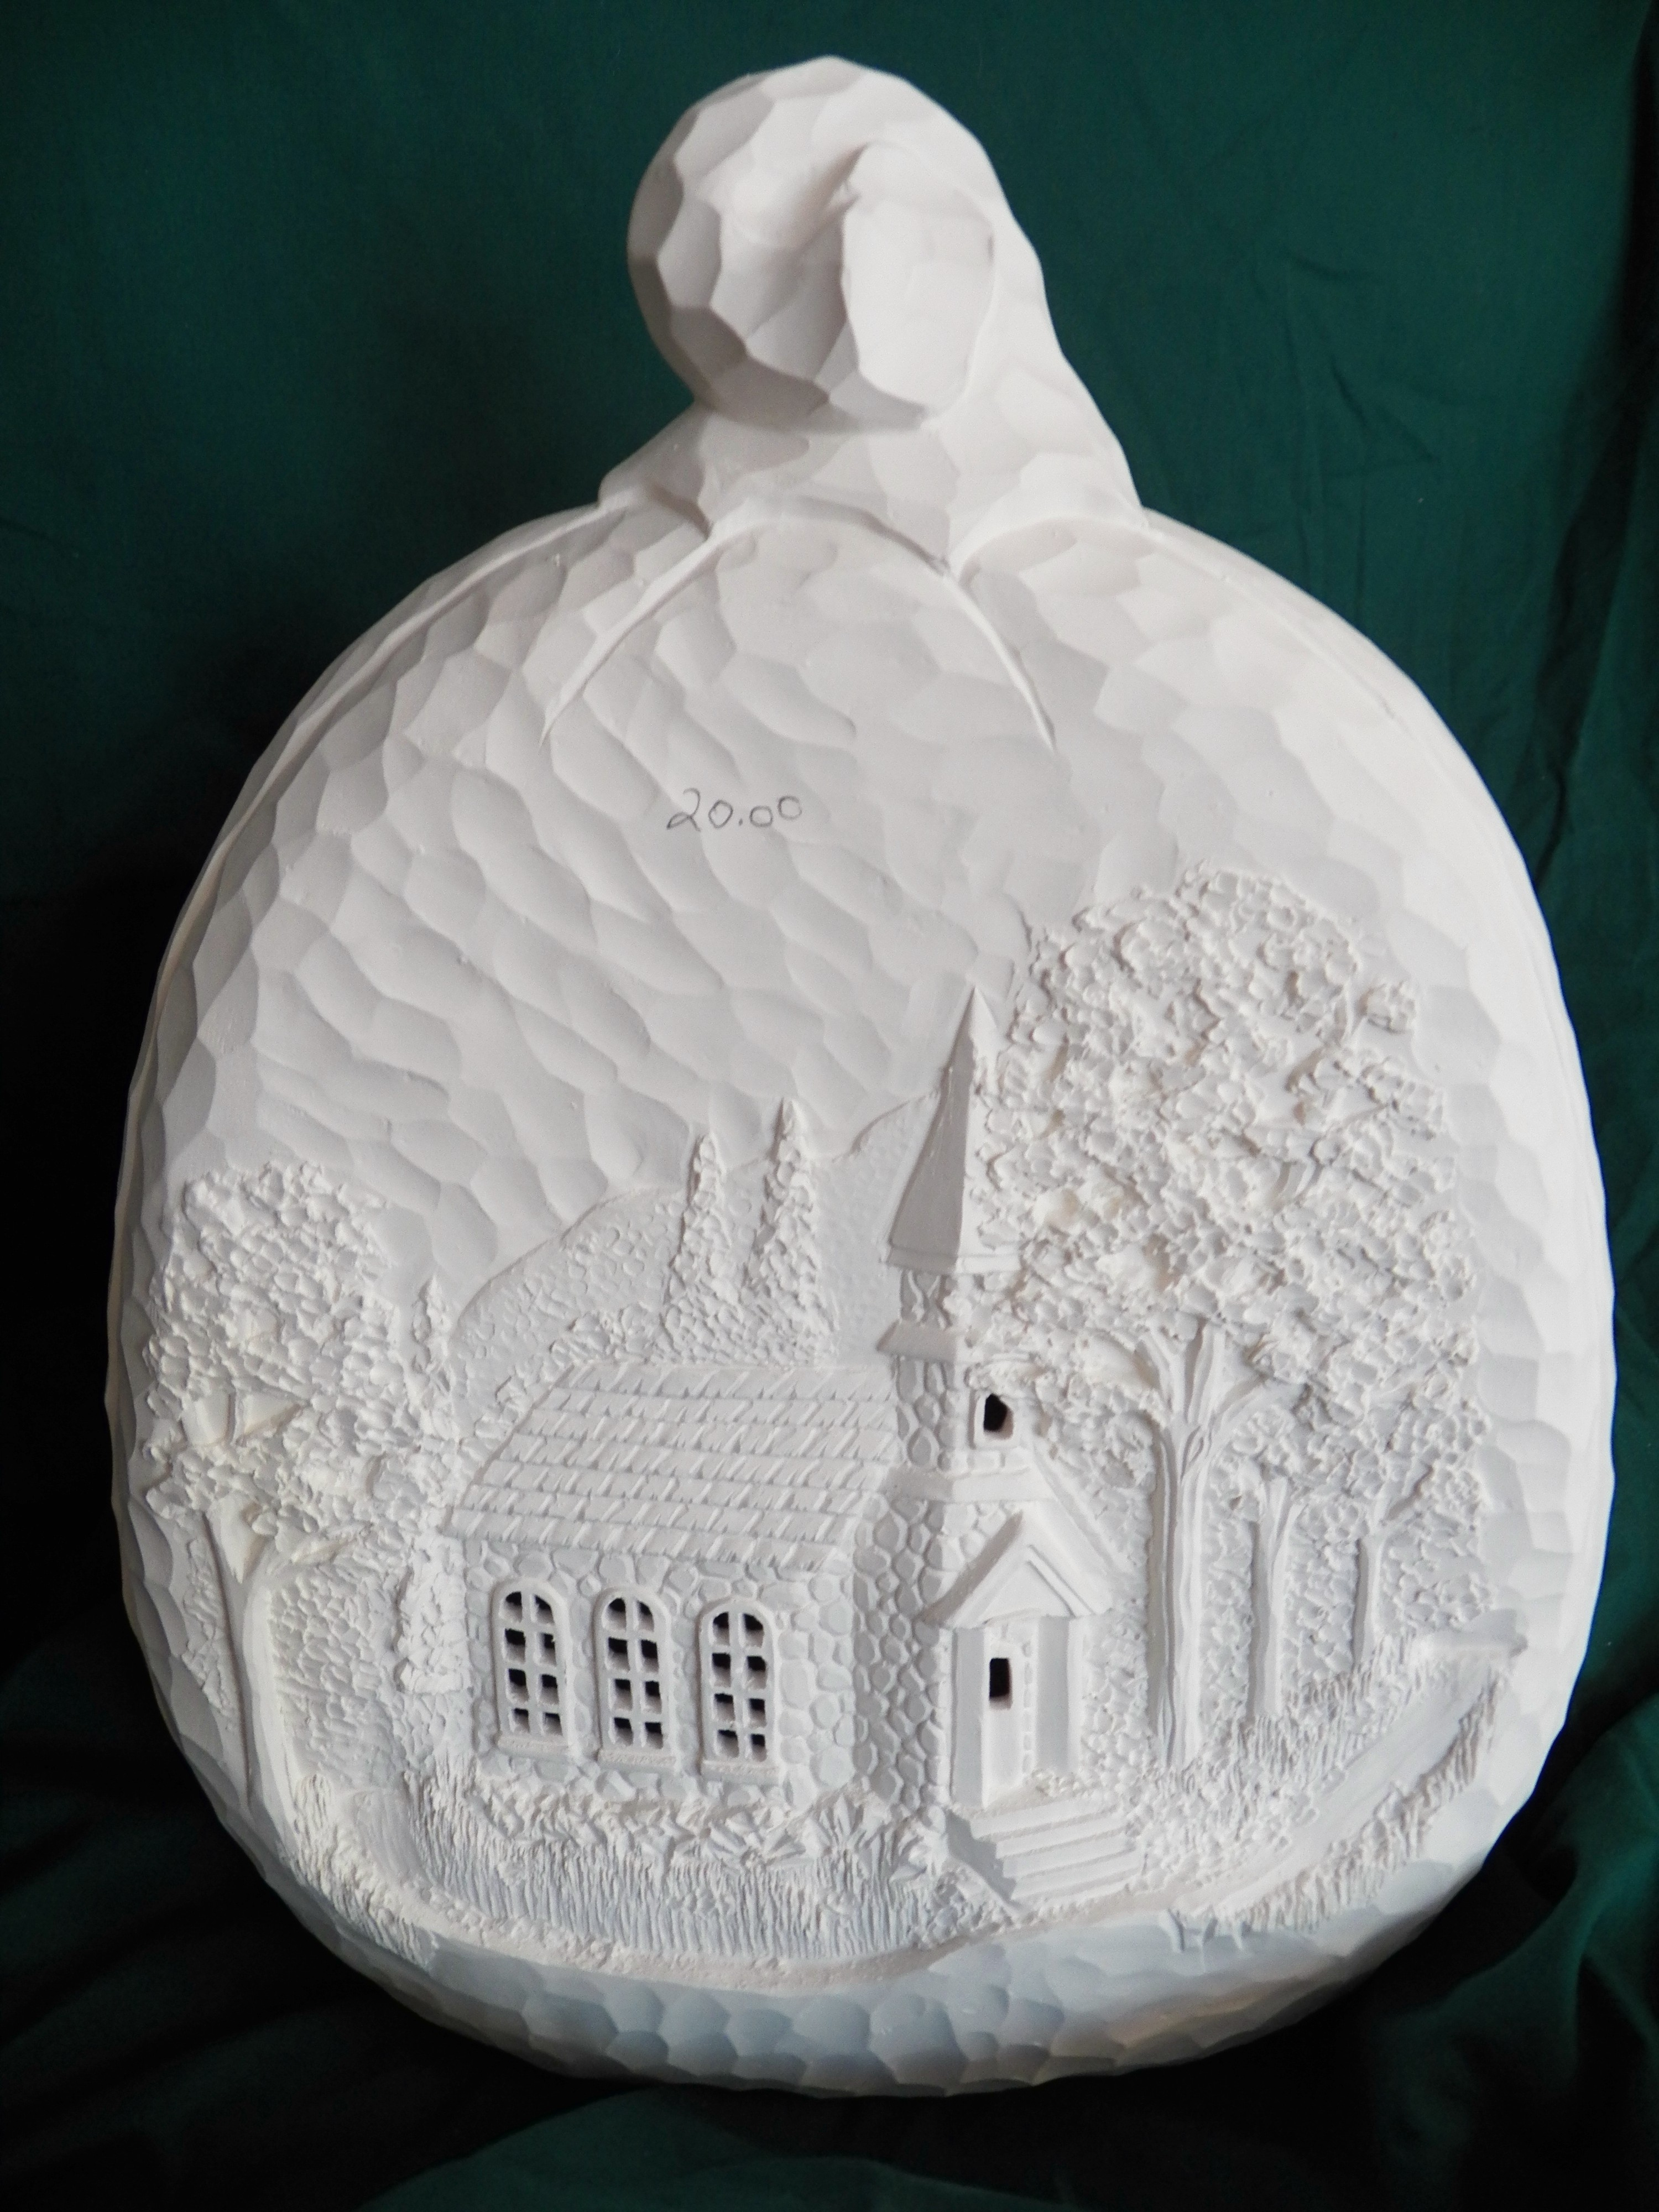 large pumpkin with windows cut out scenes bisque g z